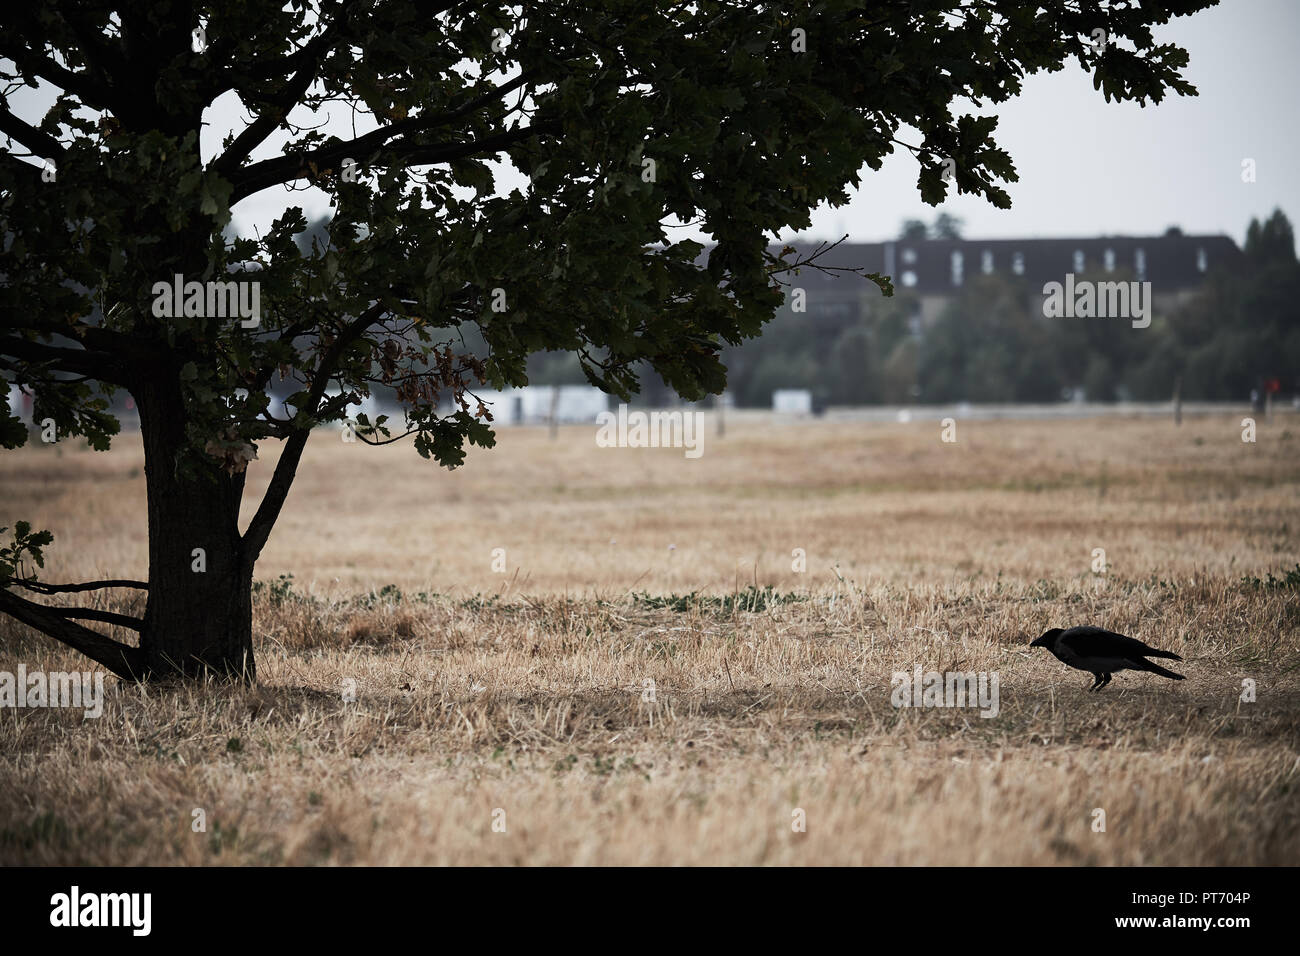 Silhouettes of a raven and a tree on the Tempelhofer Feld on a dull autumn day - Stock Image